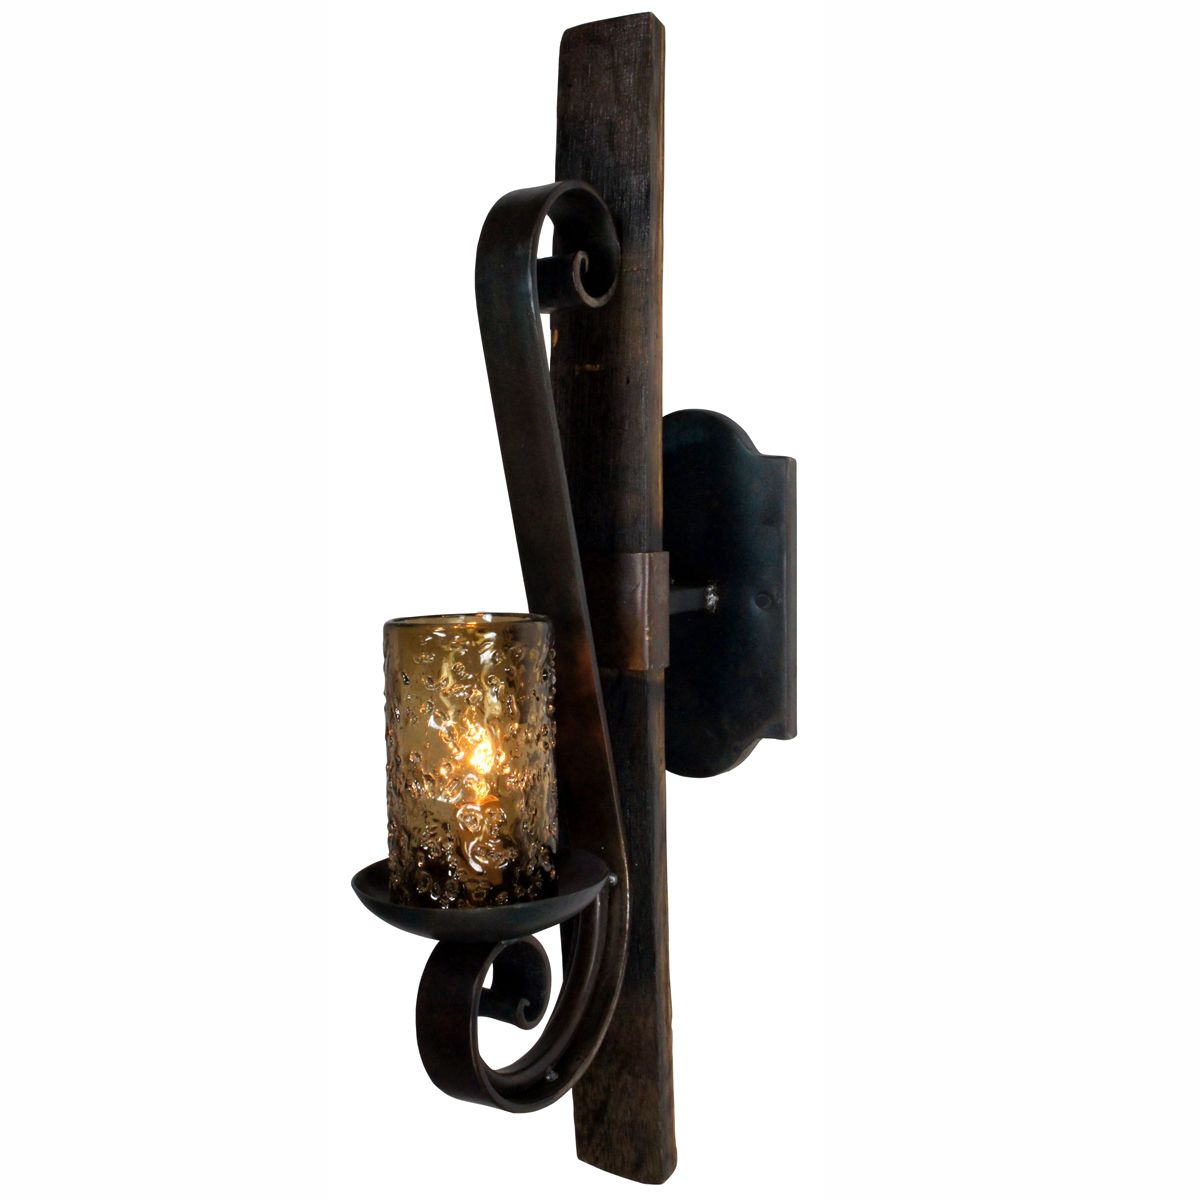 Tequila Barrel Rustic Scroll Wall Sconce with Smoked Glass